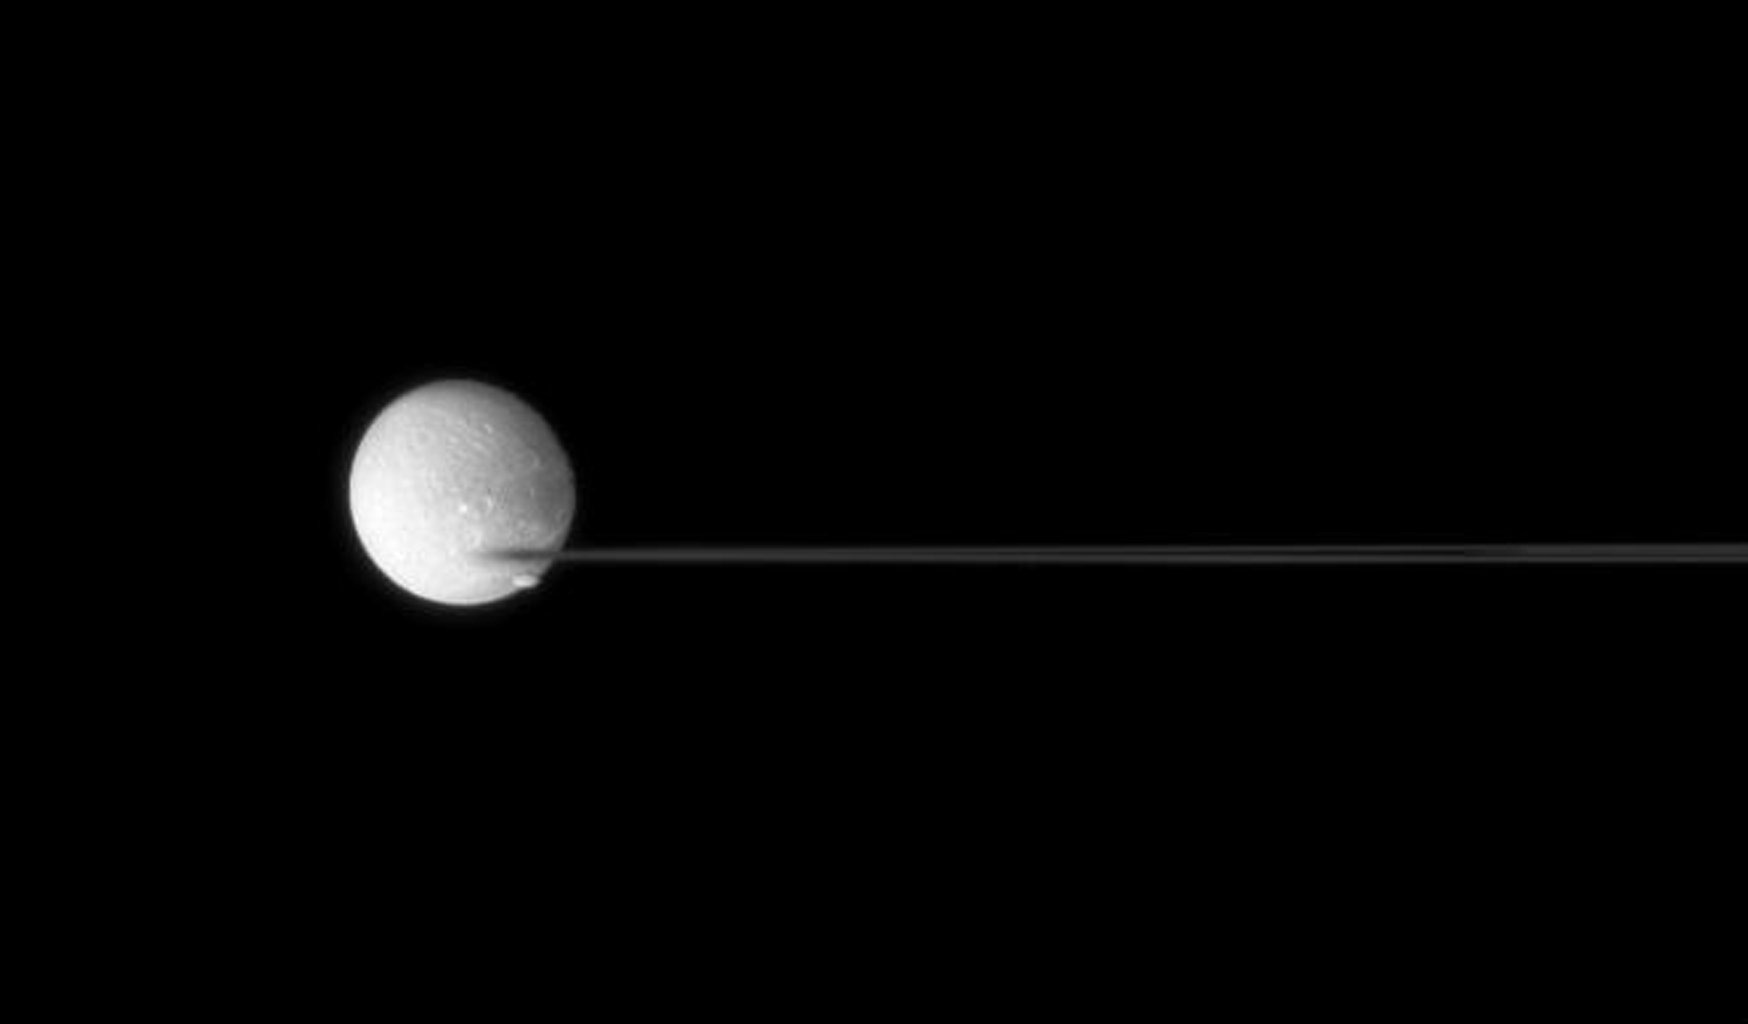 Saturn's nearly edge-on rings are caught between two moons, Dione and Pandora taken by NASA's Cassini spacecraft.